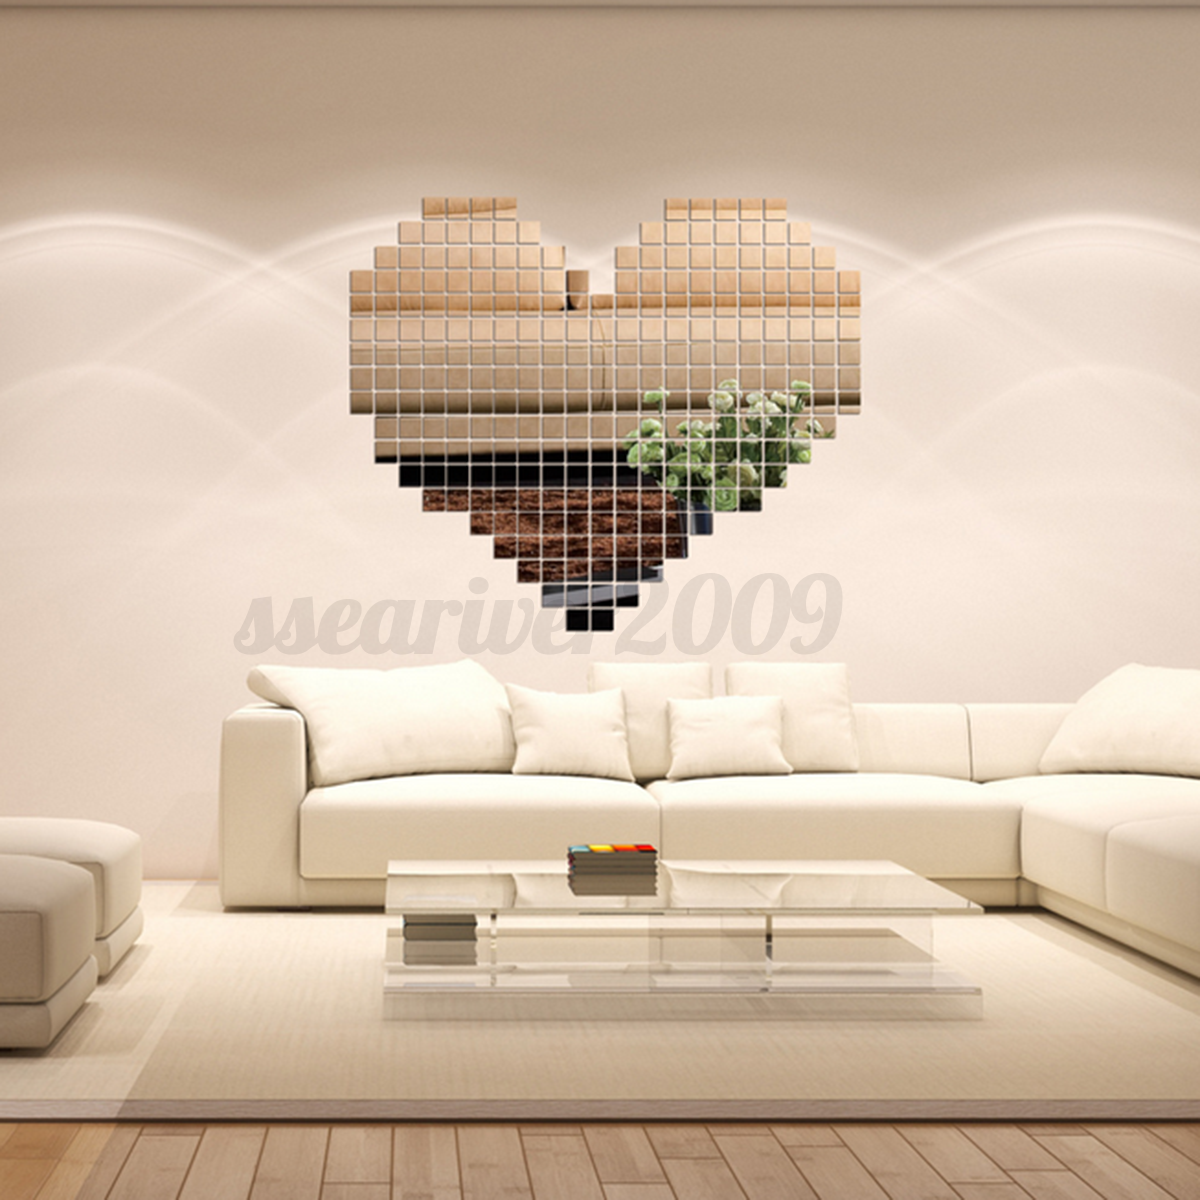 Details About 100pcs Diy 3d Decal Mirror Tile Mosaic Wall Sticker Mural Living Room Home Decor